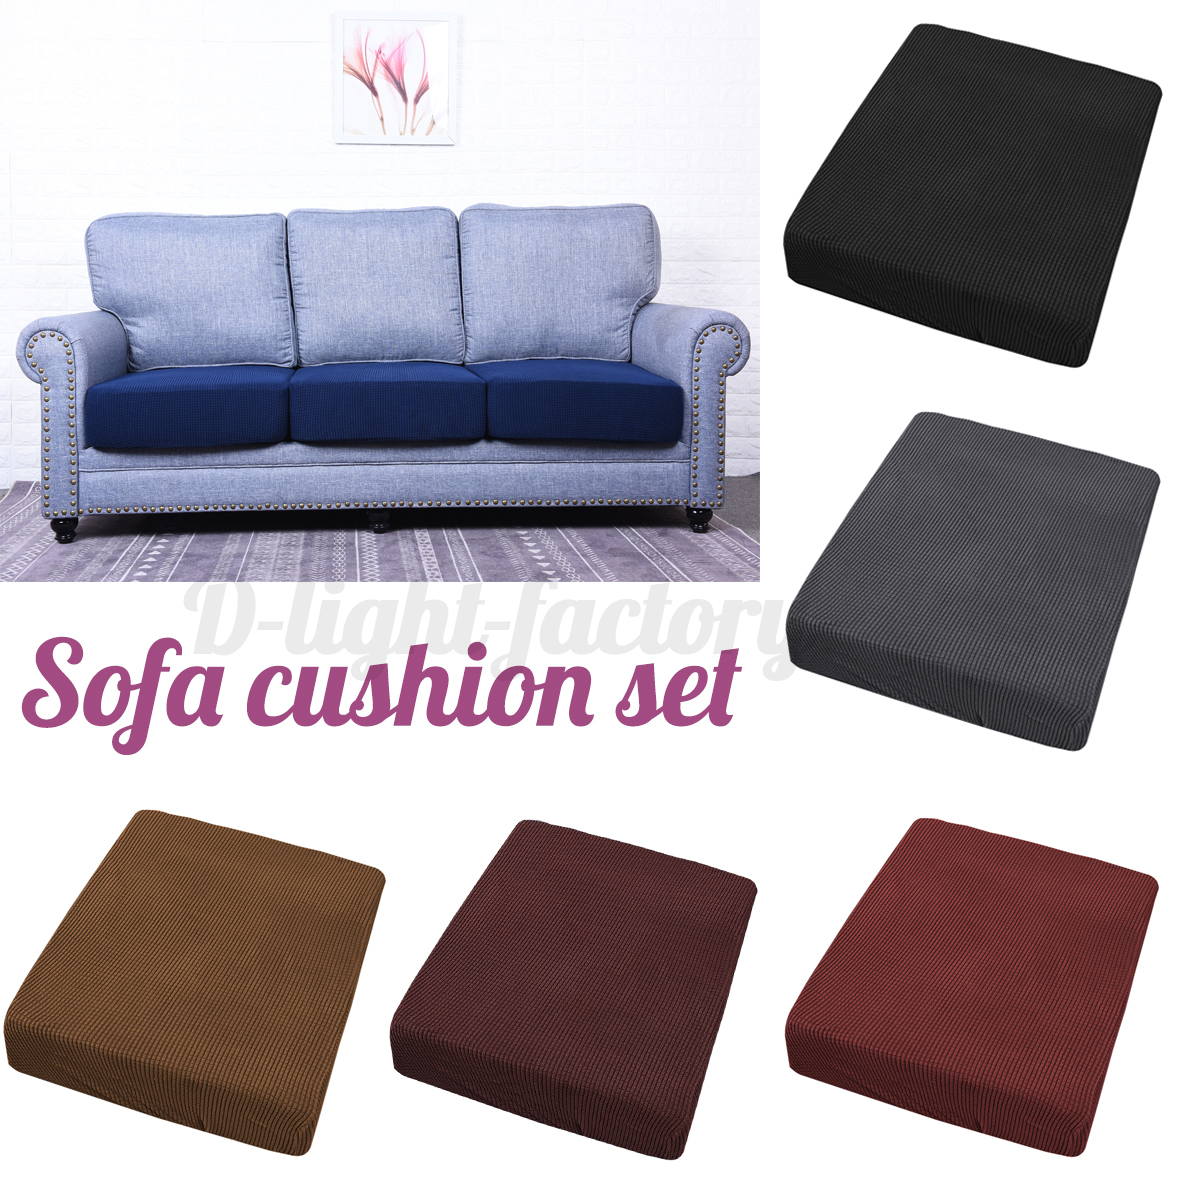 Image is loading 1 4 pcs stretchy sofa seat cushion covers